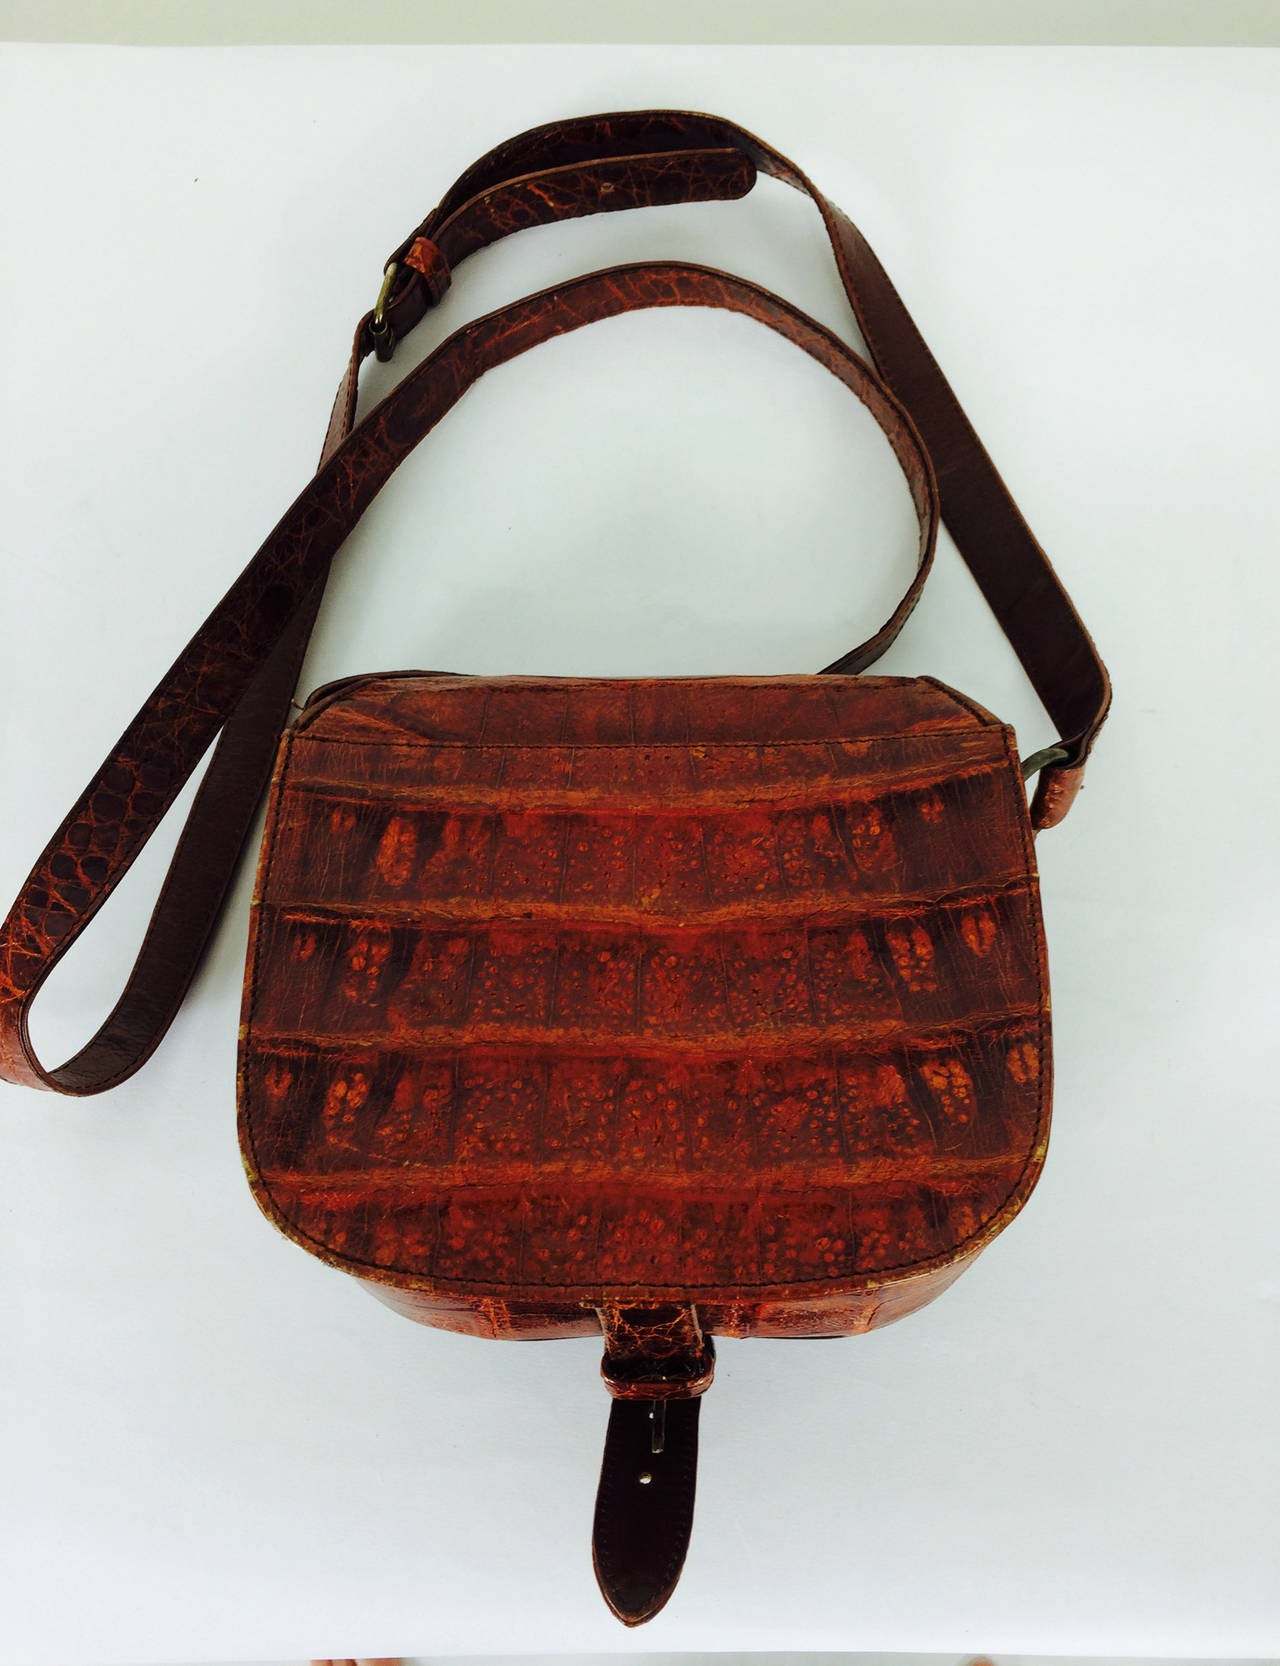 Saddle bag handbag cognac leather faux alligator Neiman Marcus 1980s 4